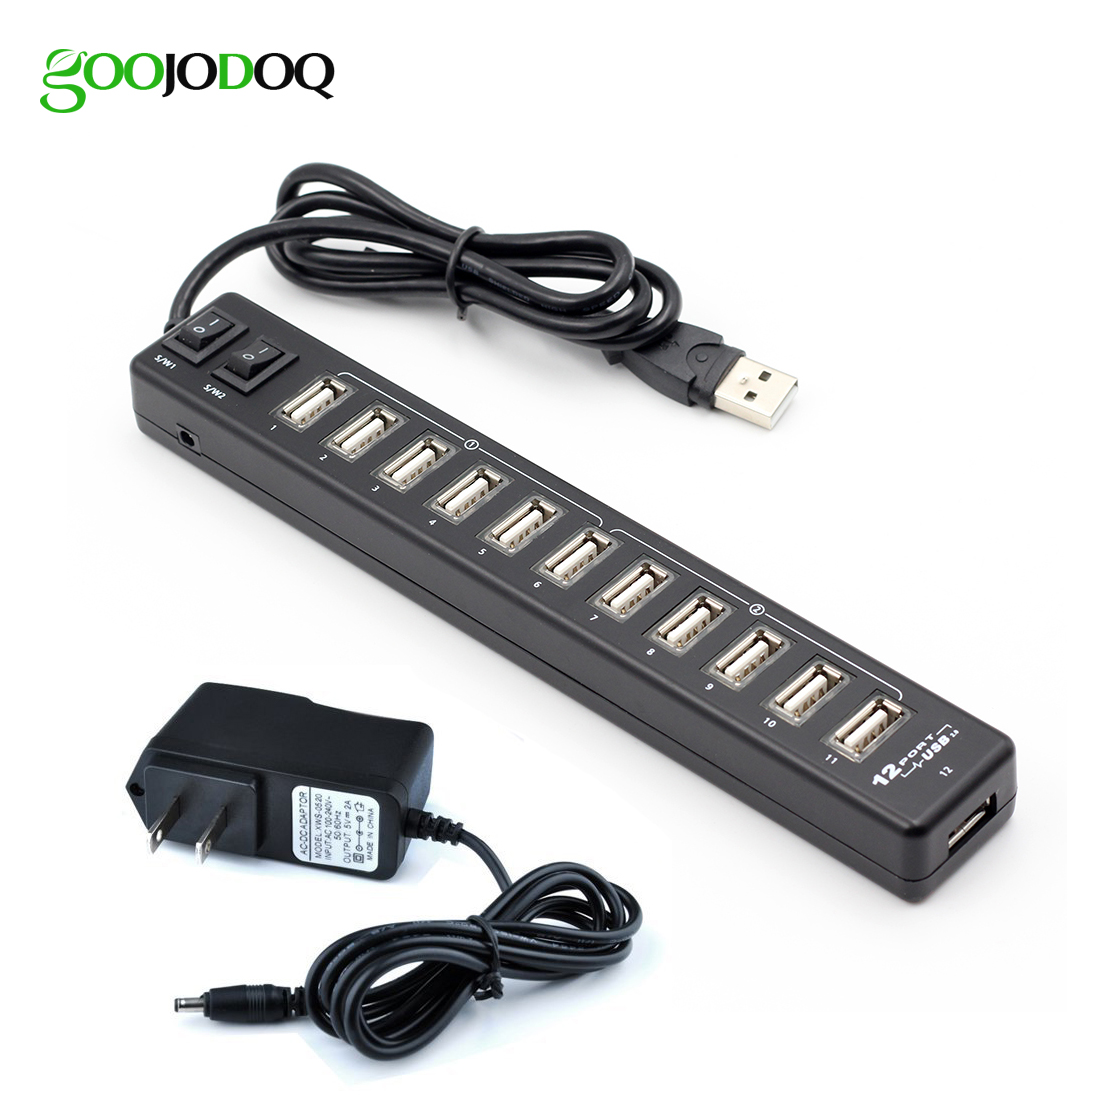 12 Ports USB Hub 2.0 High Quality USB2.0 Hub Splitter 2 Switch with EU / US Power Adapter for Macbook Air Laptop PC Computer E11 12 ports usb hub 2 0 high quality usb2 0 hub splitter 2 switch with eu us power adapter for macbook air laptop pc computer e11